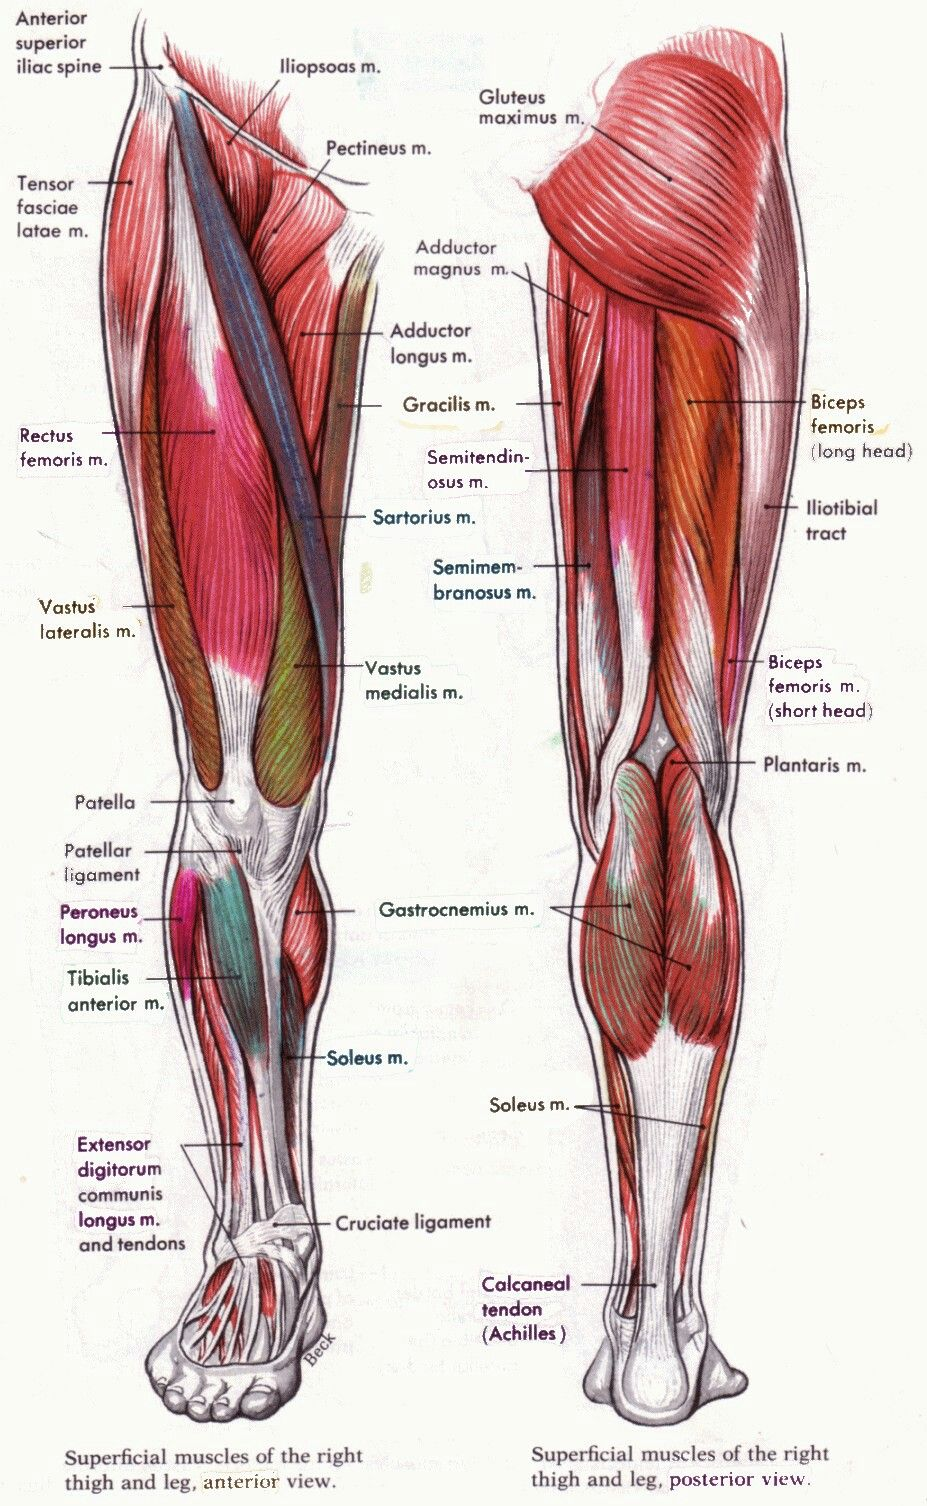 Pin de Marianne James en Massage and Bodywork | Pinterest | Anatomía ...